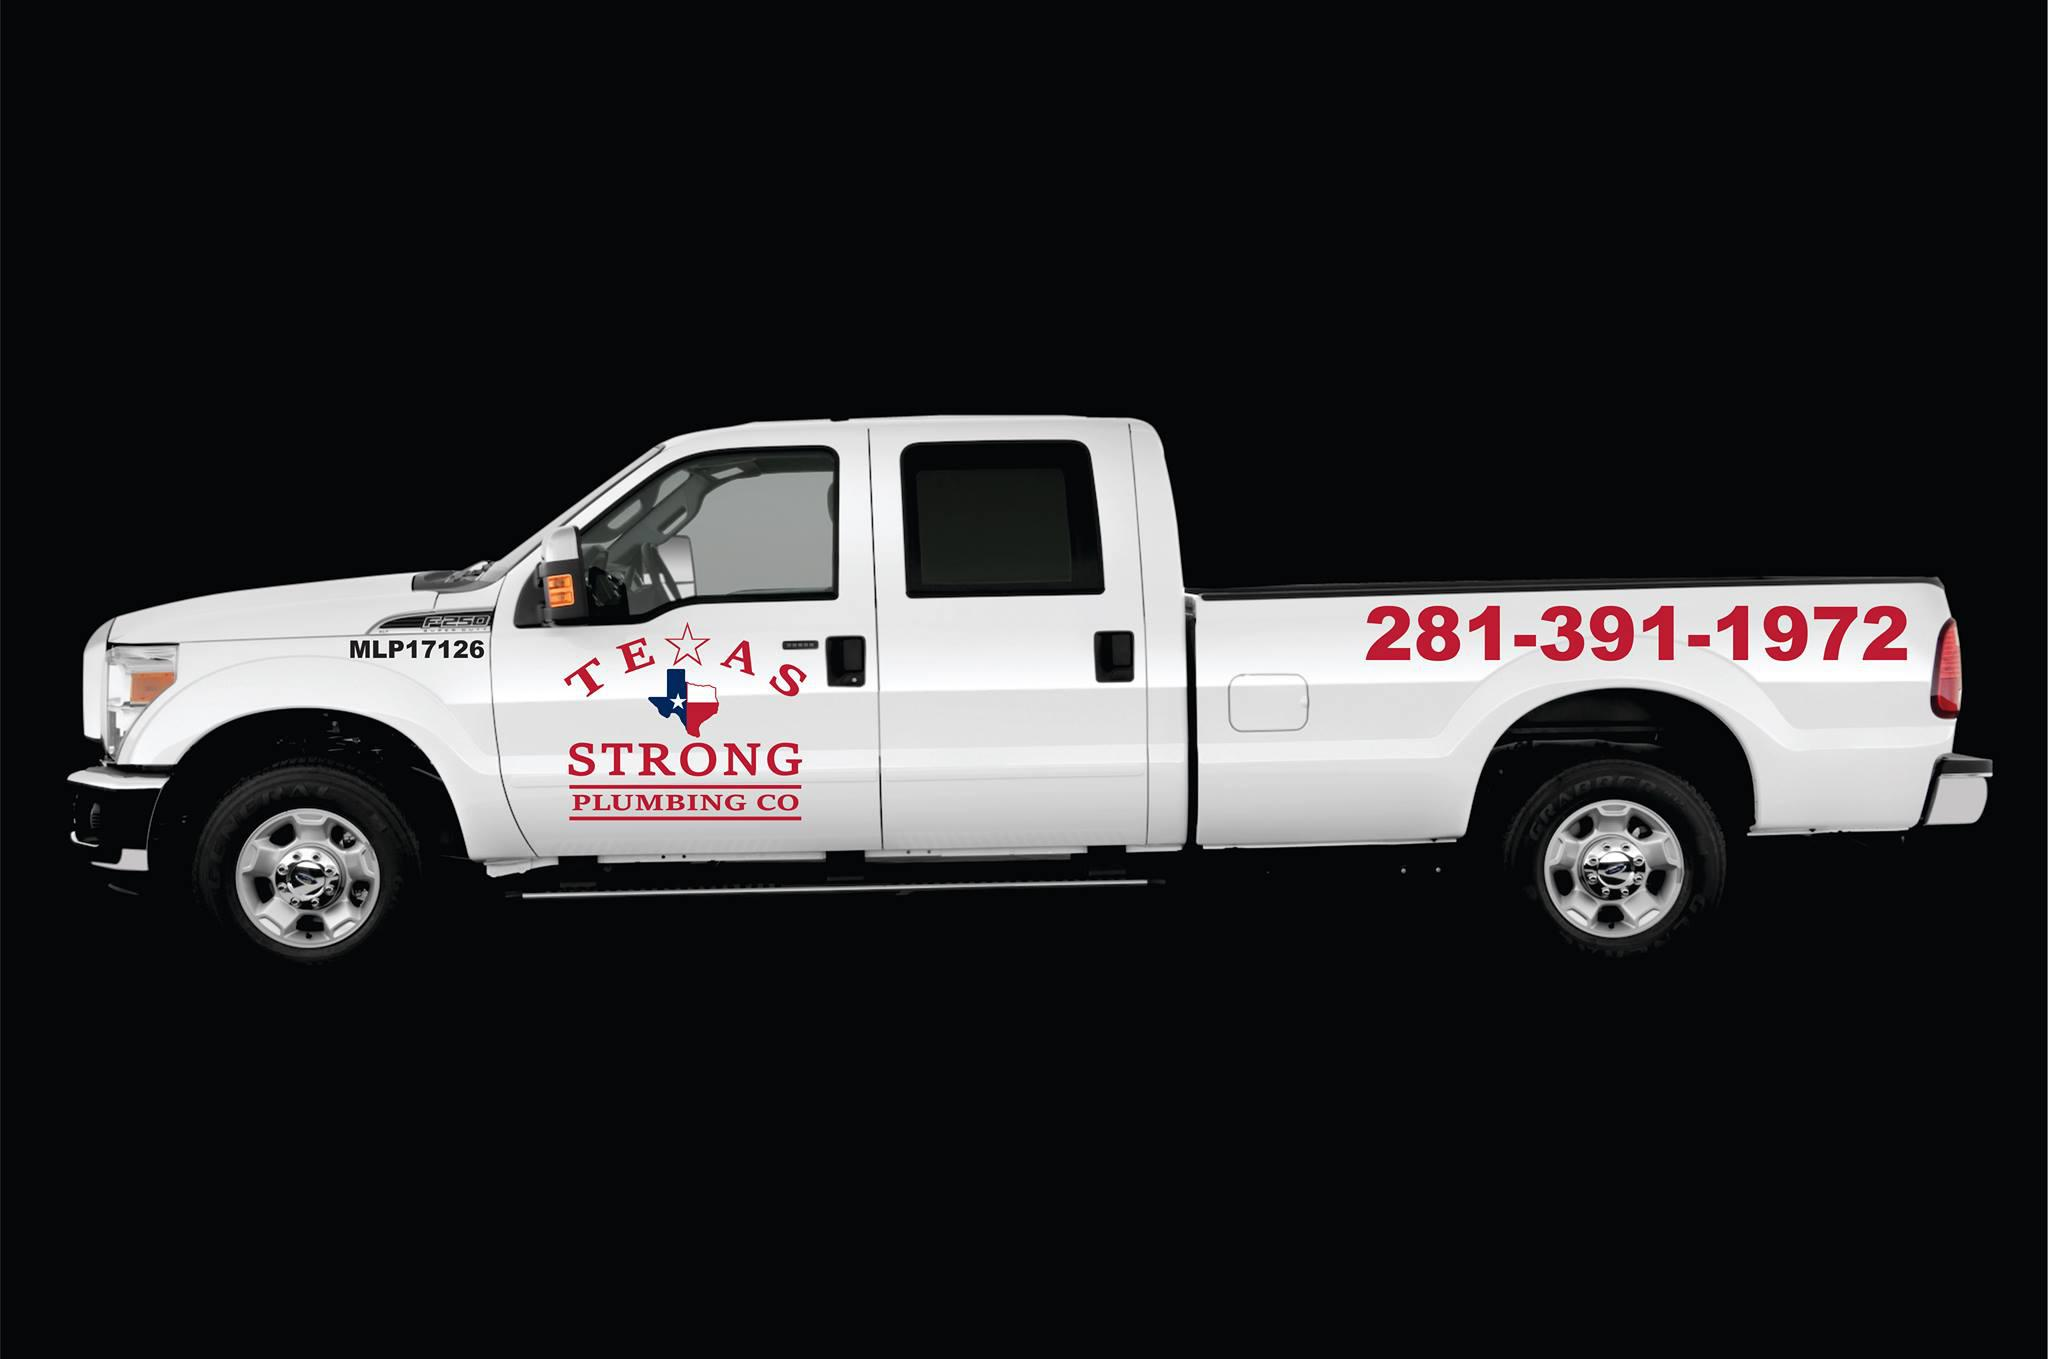 Texas Strong Plumbing LLC image 5